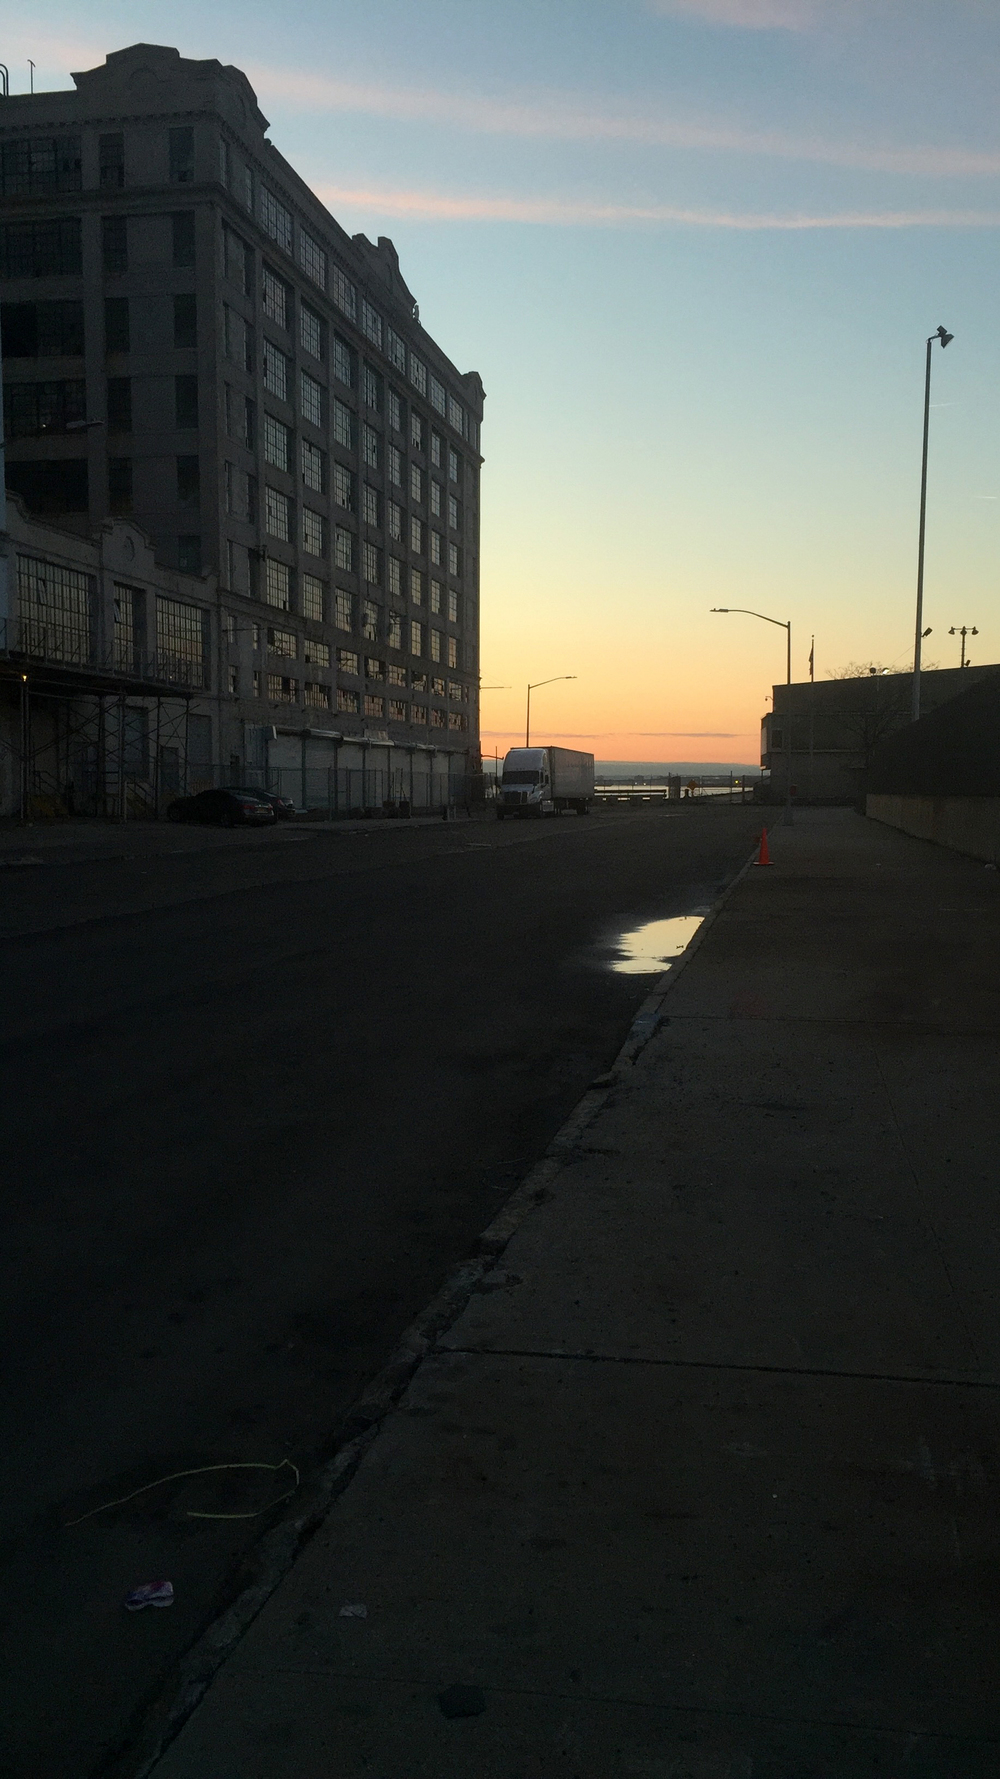 Looking towards an abandoned factory building along the Upper New York Bay waterfront in one of the last remaining industrial sections of Brooklyn on 39th Street during sunset - March 15, 2016